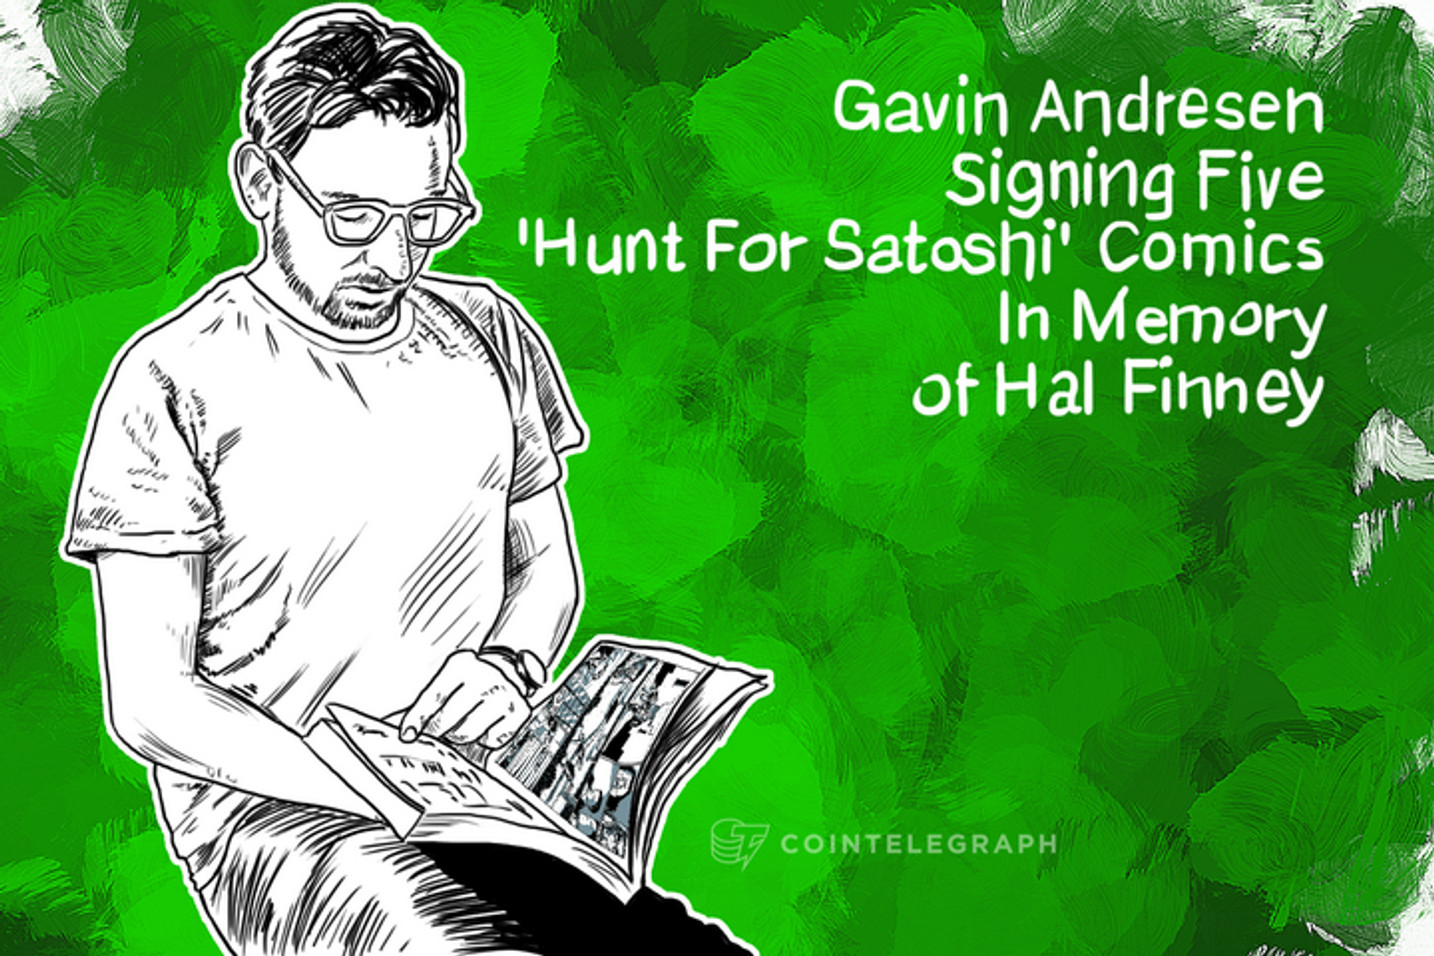 Gavin Andresen Signing Five 'Hunt For Satoshi' Comics In Memory of Hal Finney